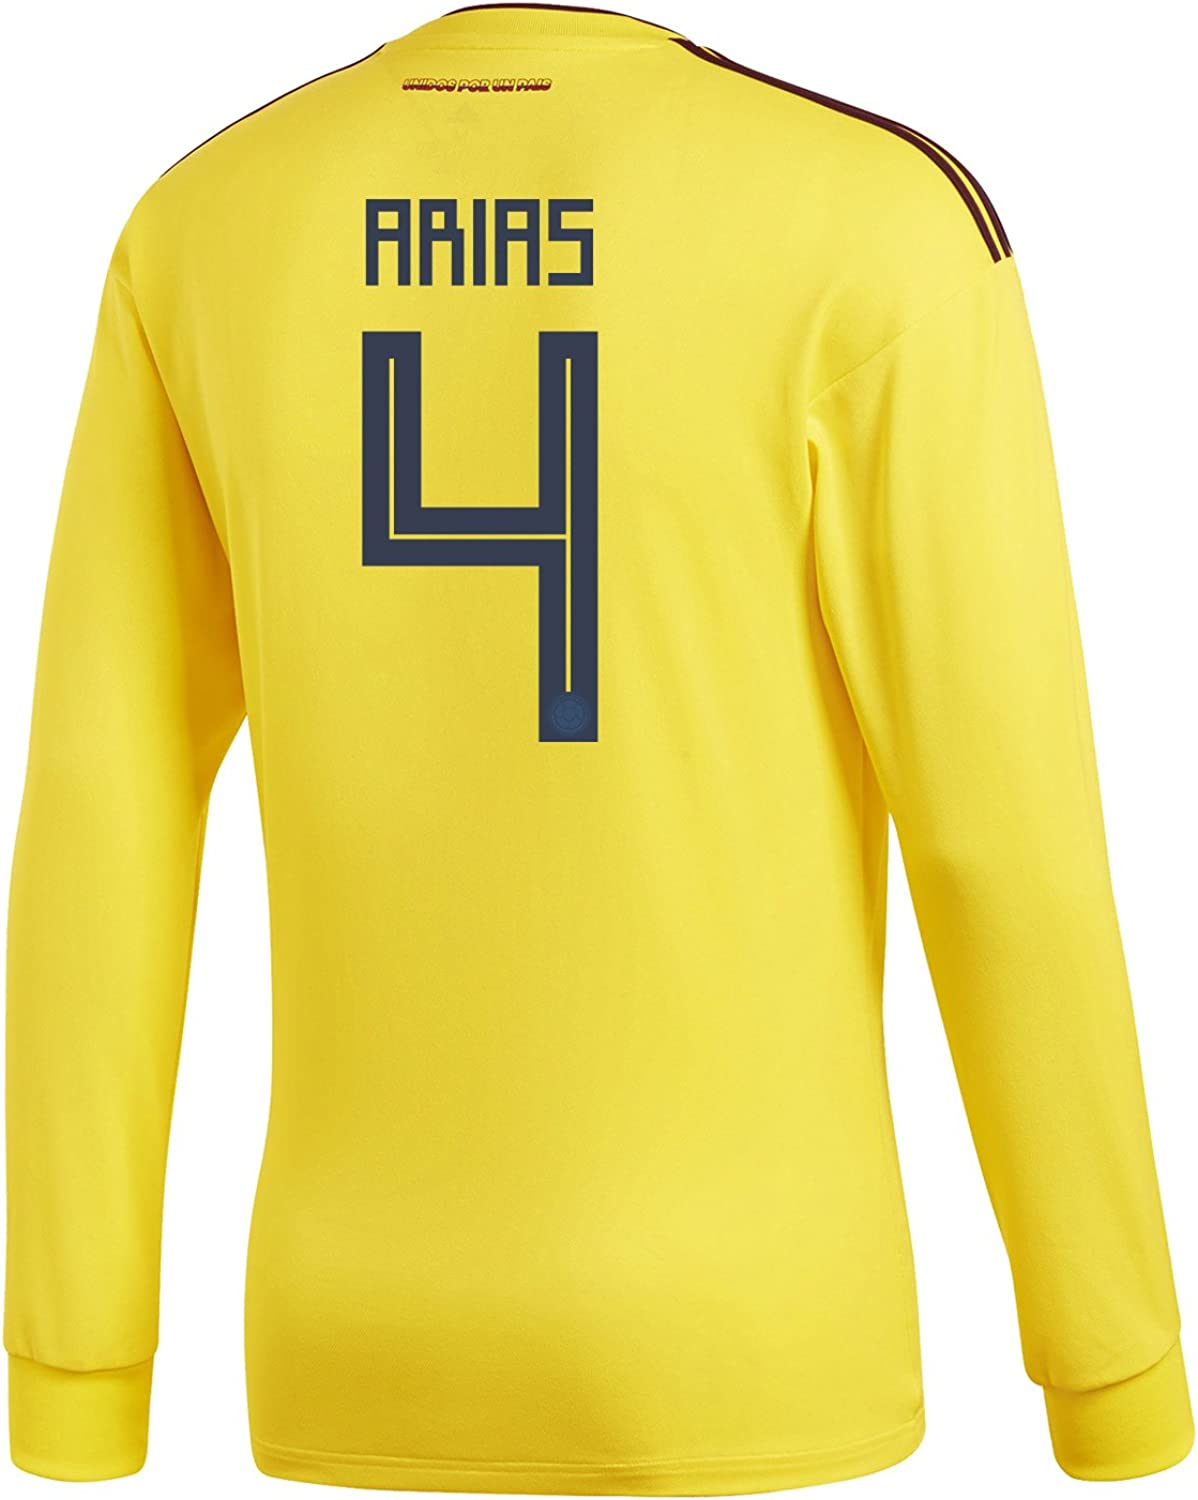 Adidas Arias  4 Colombia Home Men's Long Sleeve Soccer Jersey World Cup 2018